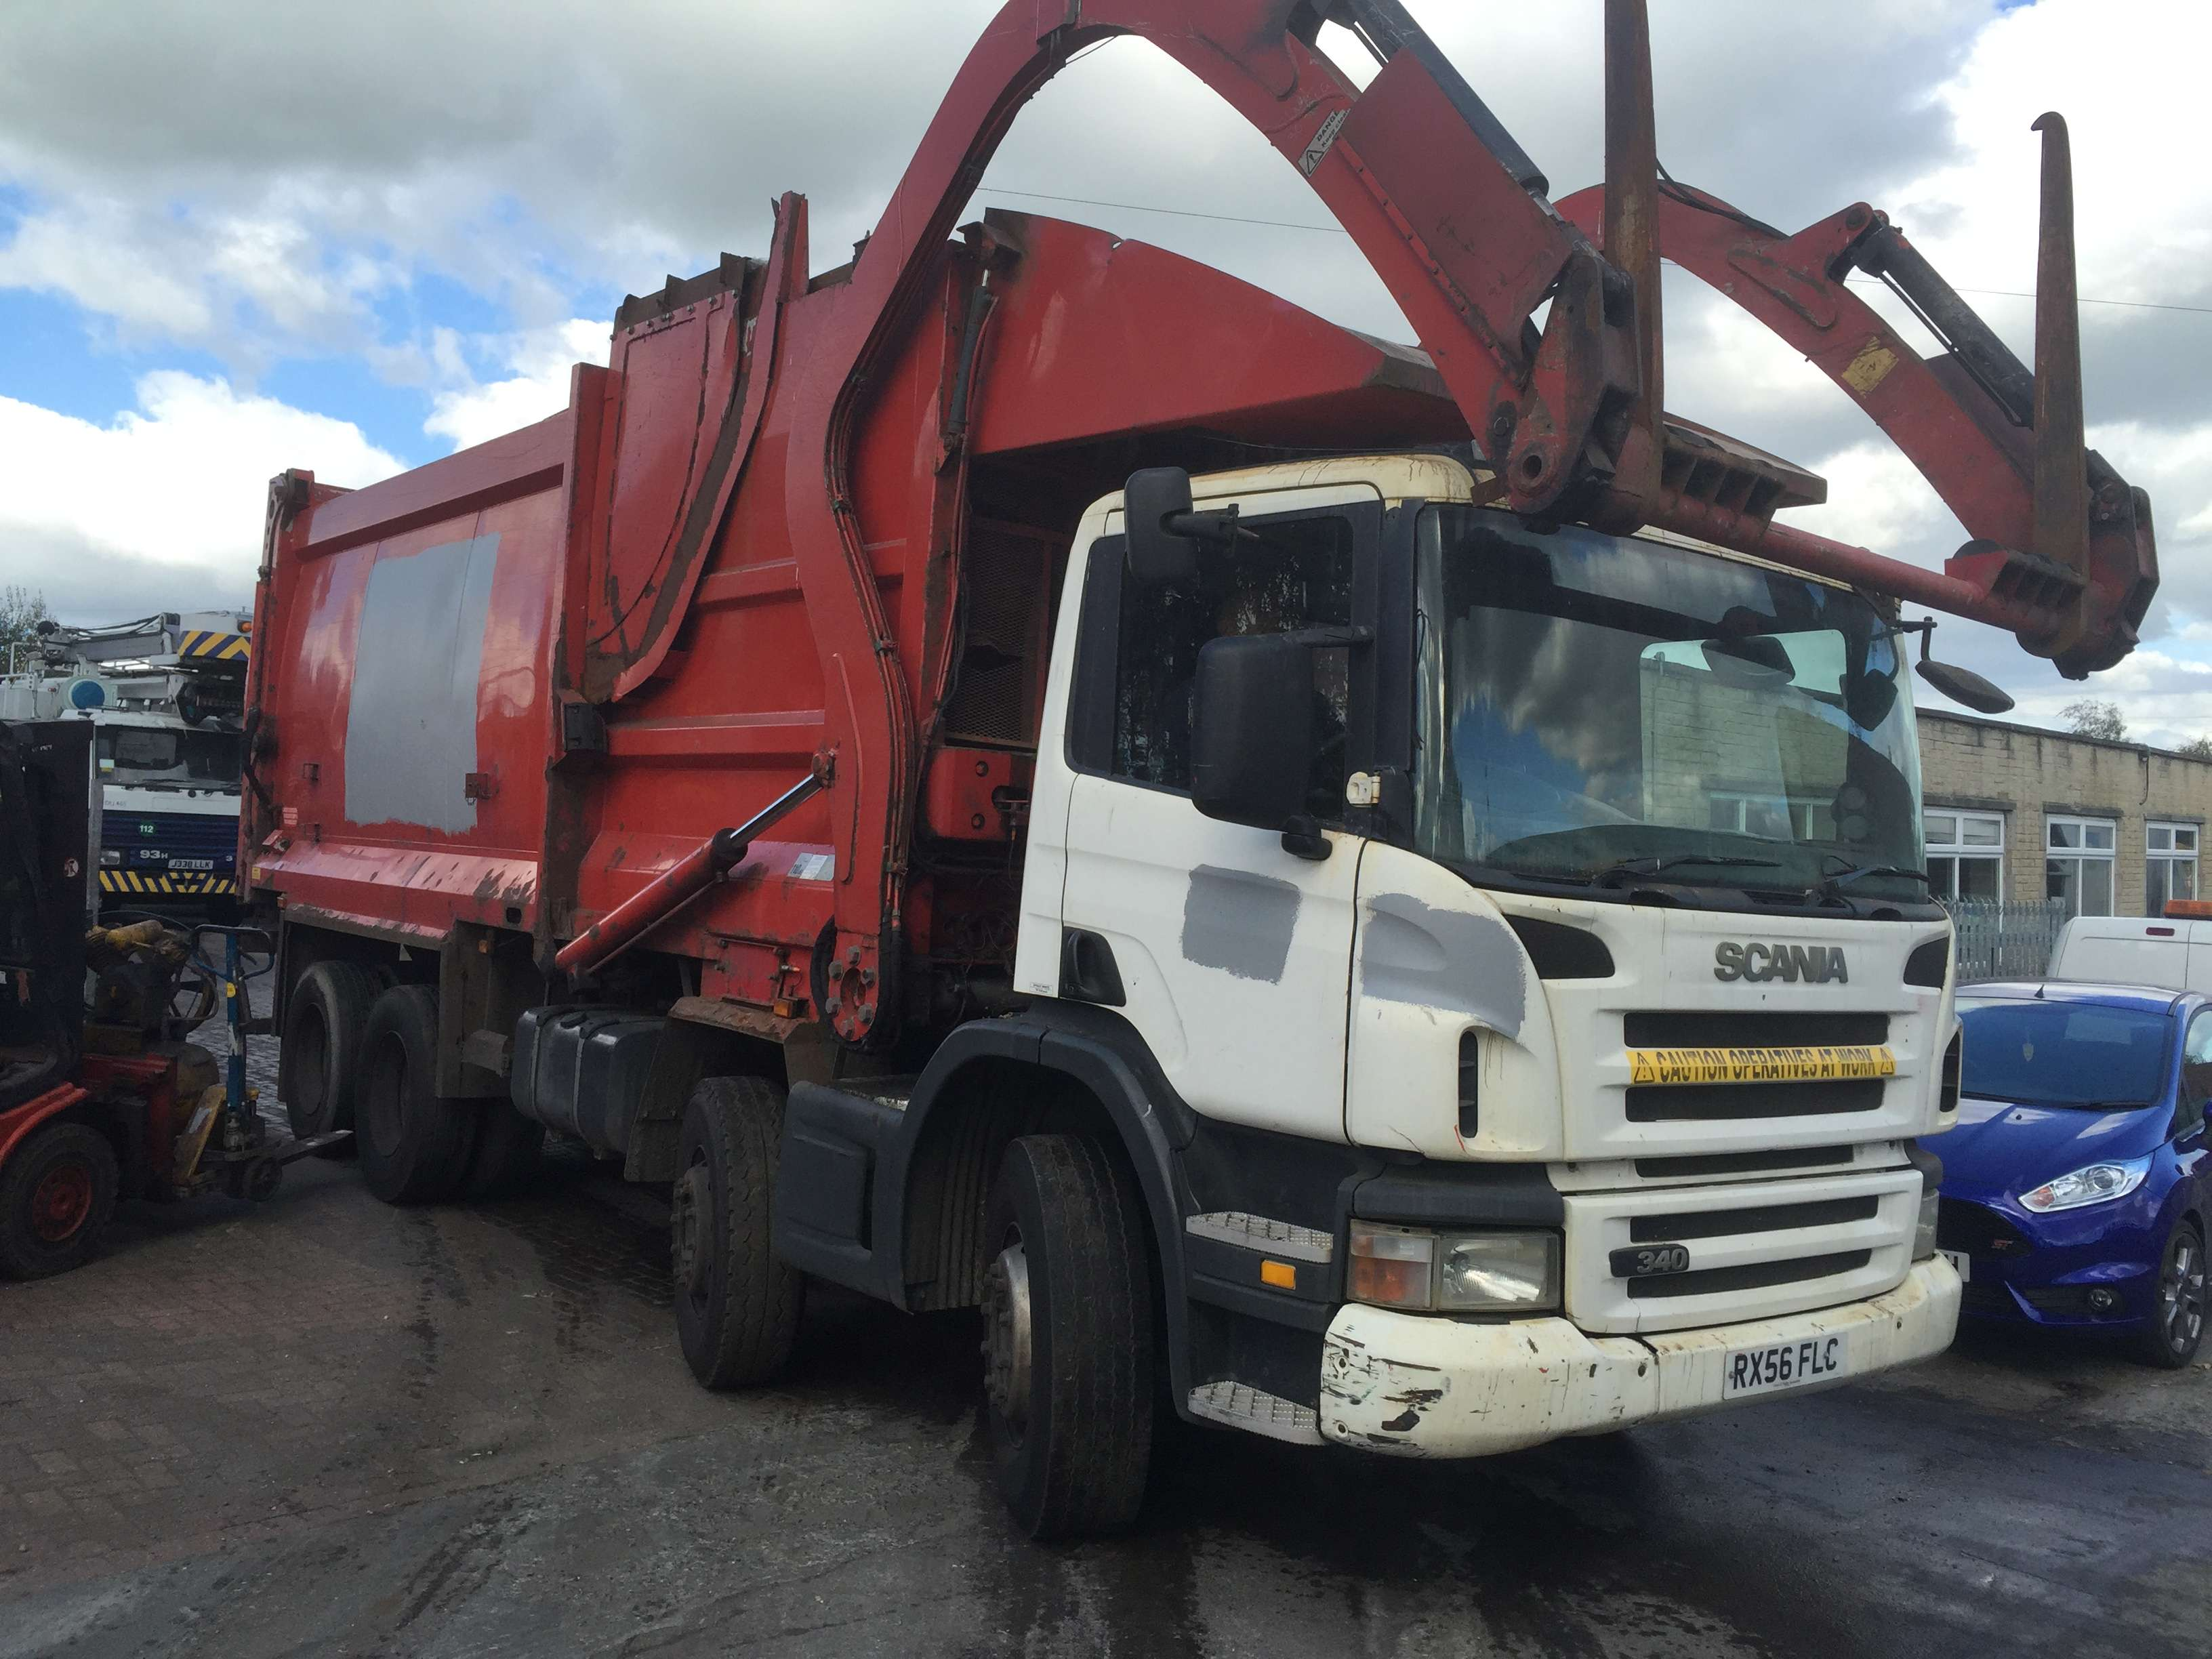 2006 Scania P340 8x4 FEL for sale 2